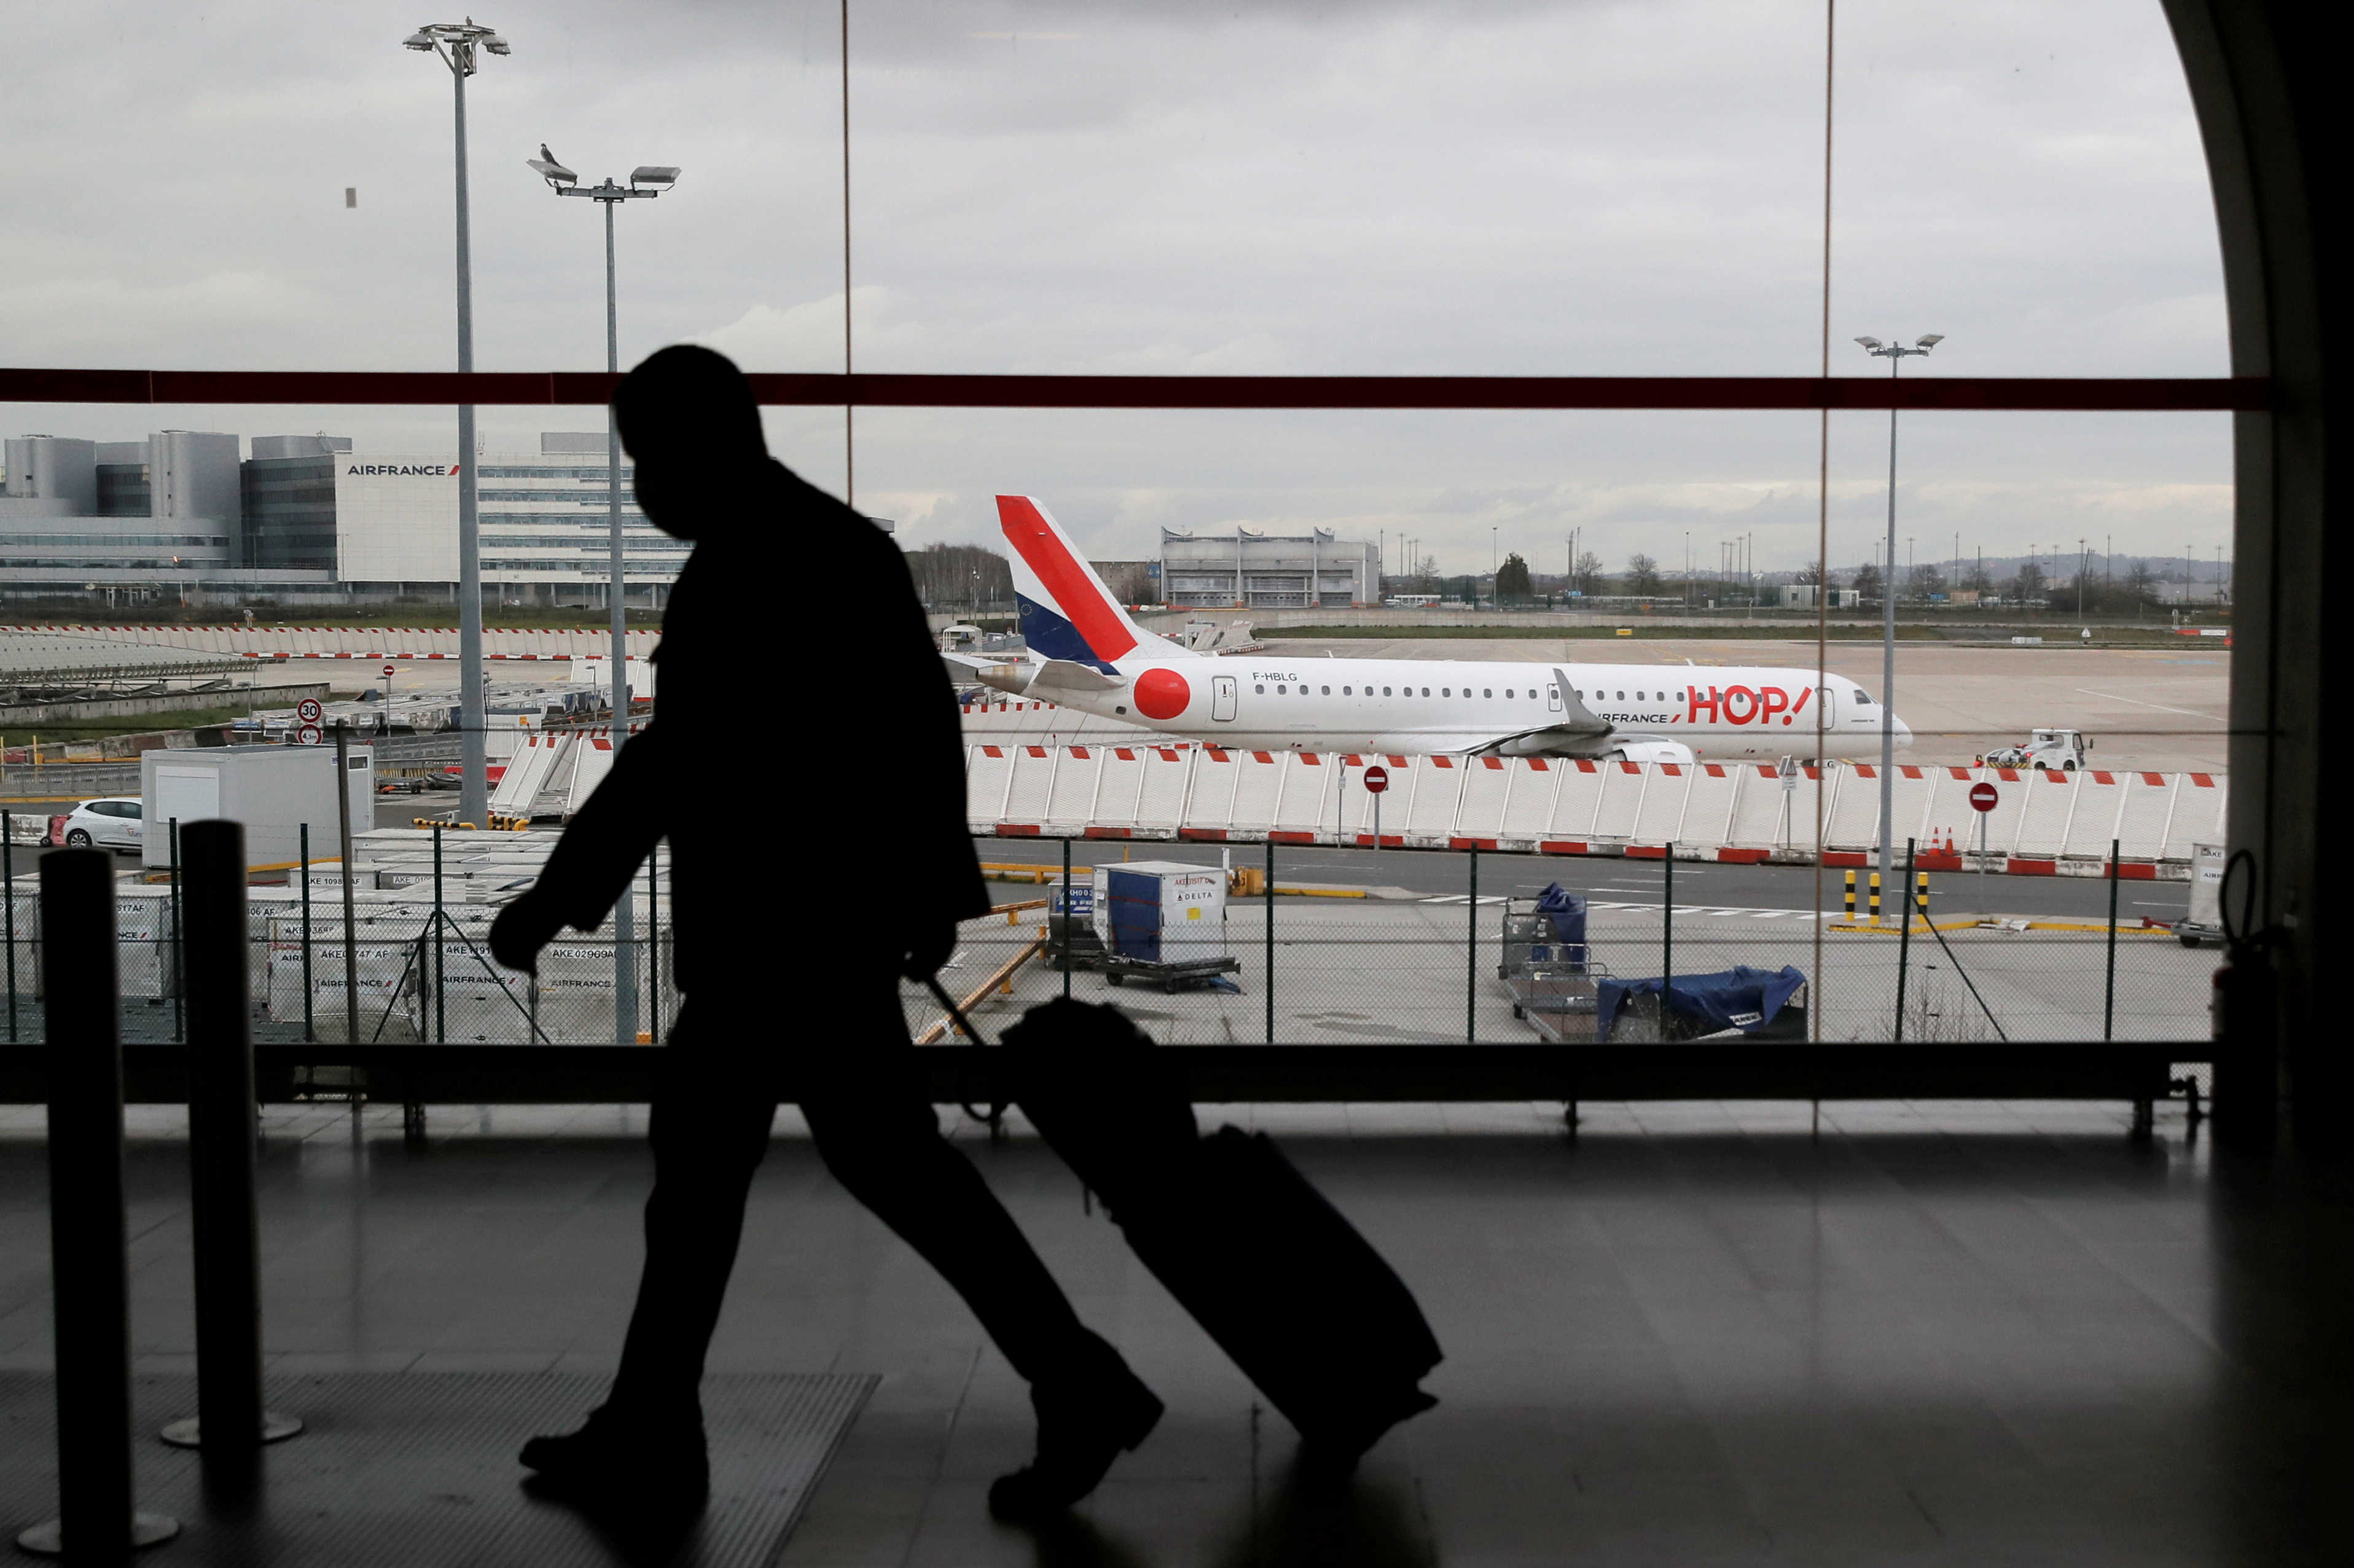 A man walks inside a Terminal at Paris Charles de Gaulle airport in Roissy near Paris as France closed its borders to travellers outside European Union due to restrictions against the spread of the coronavirus disease (COVID-19) in France, February 5, 2021. REUTERS/Gonzalo Fuentes/File Photo